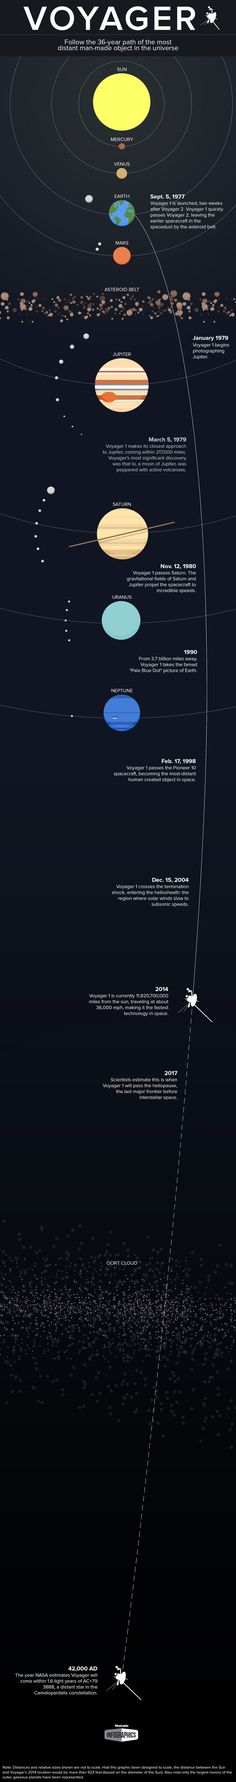 Voyager-1 -> What a Voyage and still going, just don't make them like they use too  :)